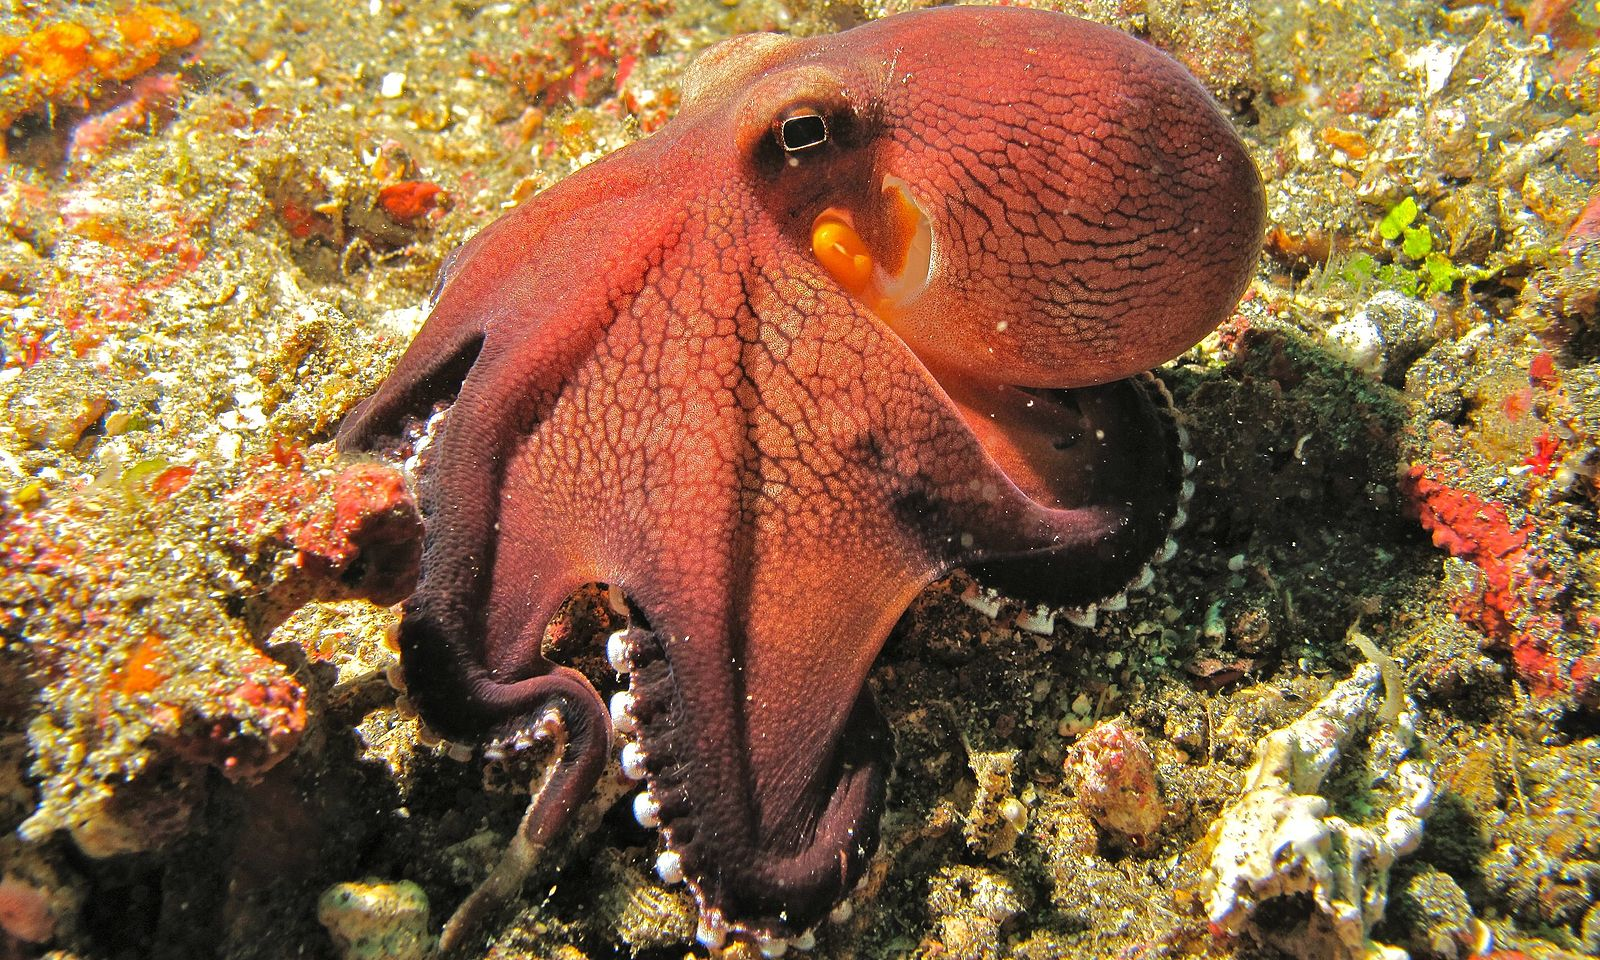 A red octopus seen in profile sits on top of sandy coral.